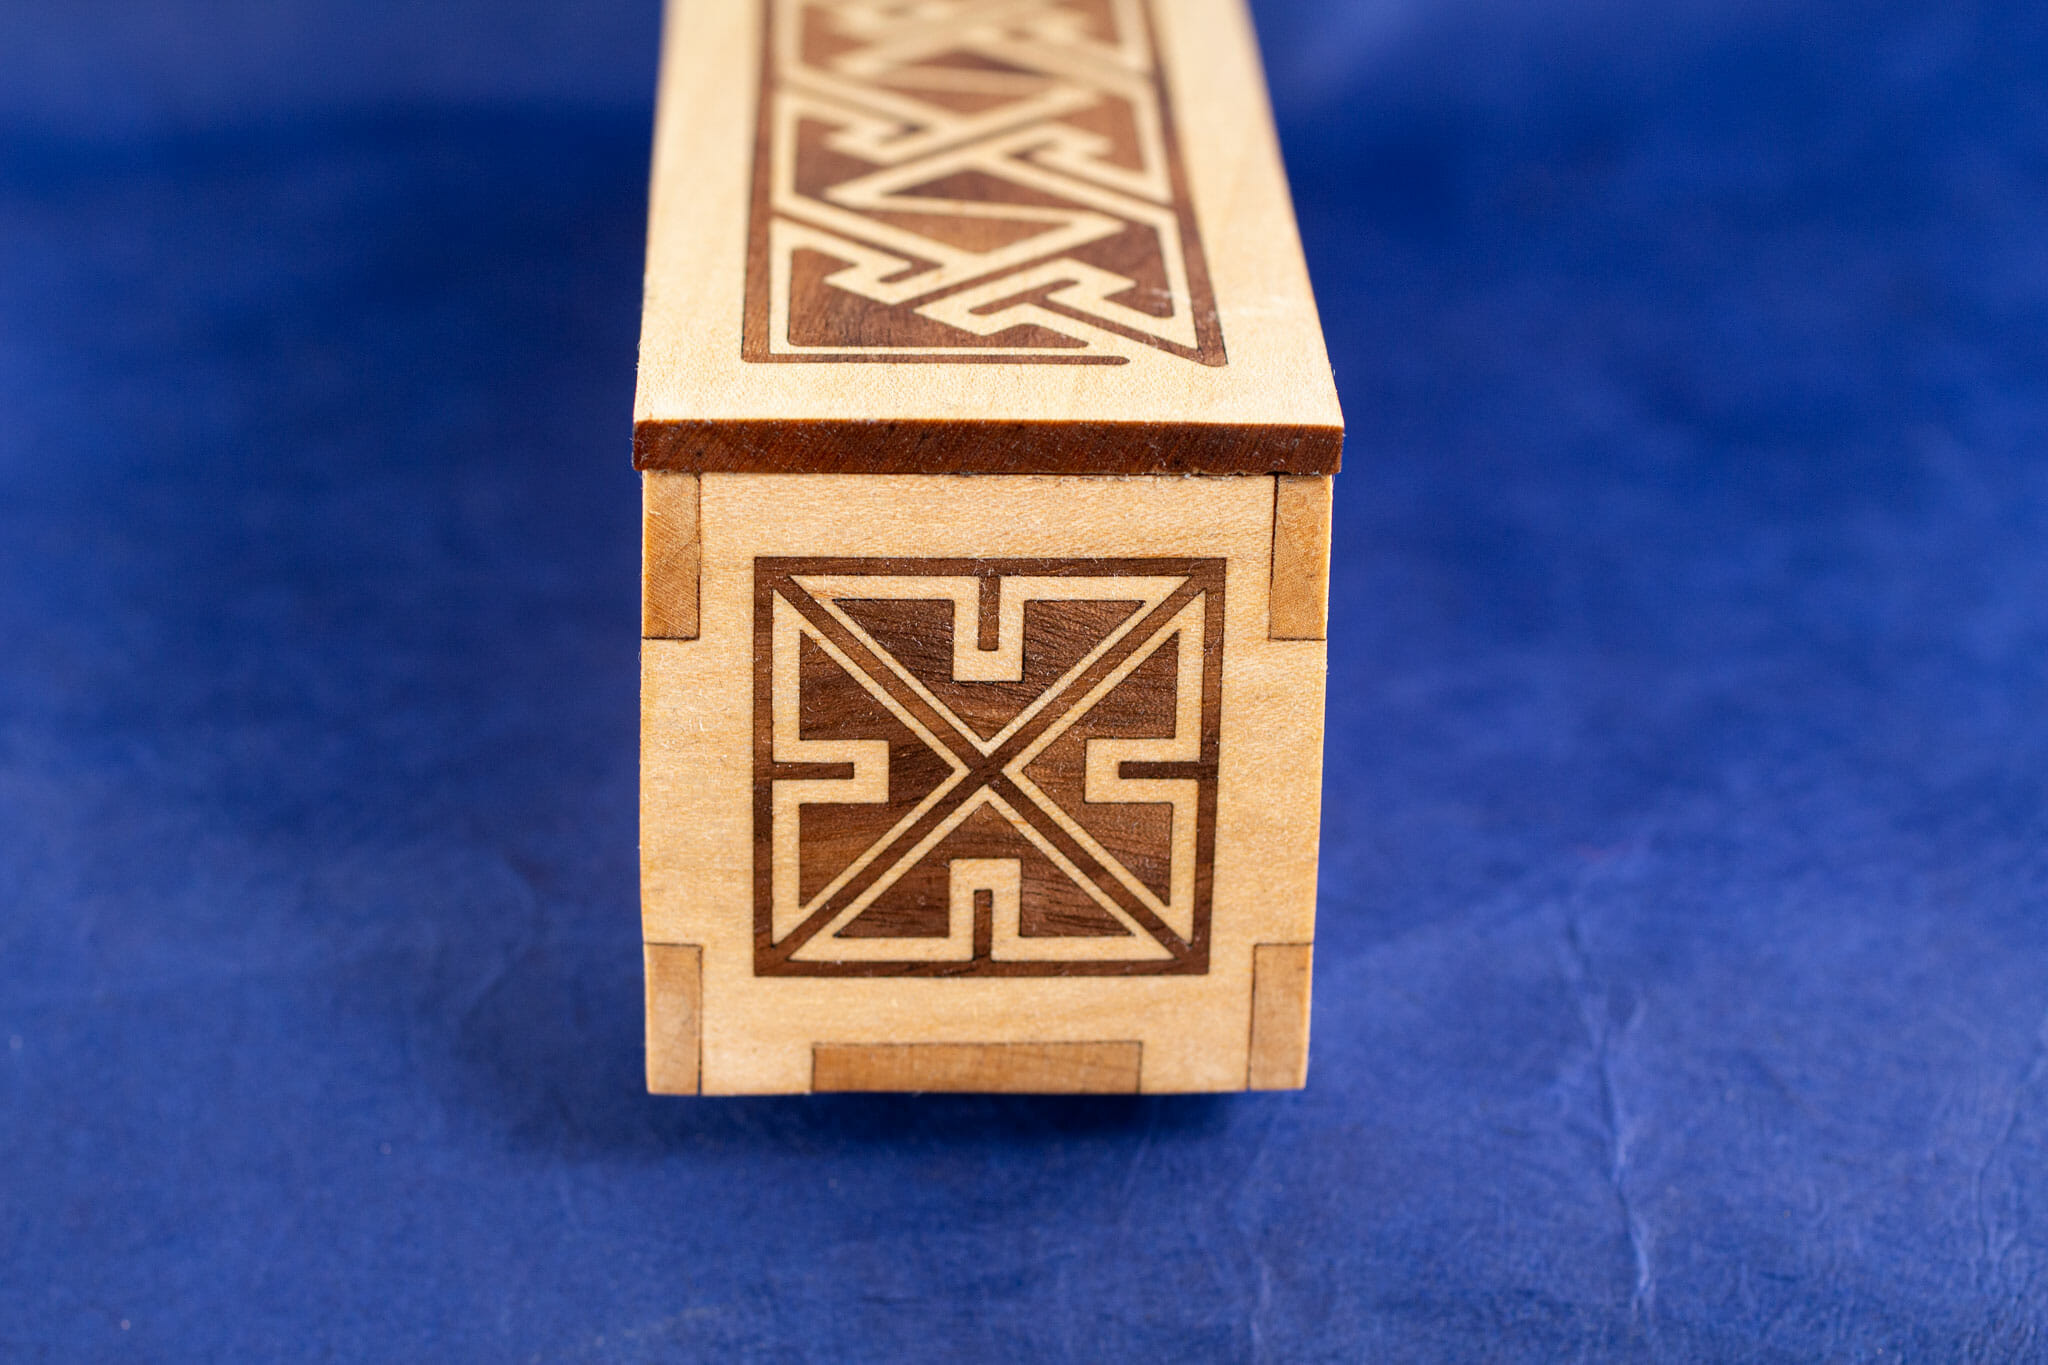 Long Inlaid Celtic Key Pattern Box (end view)